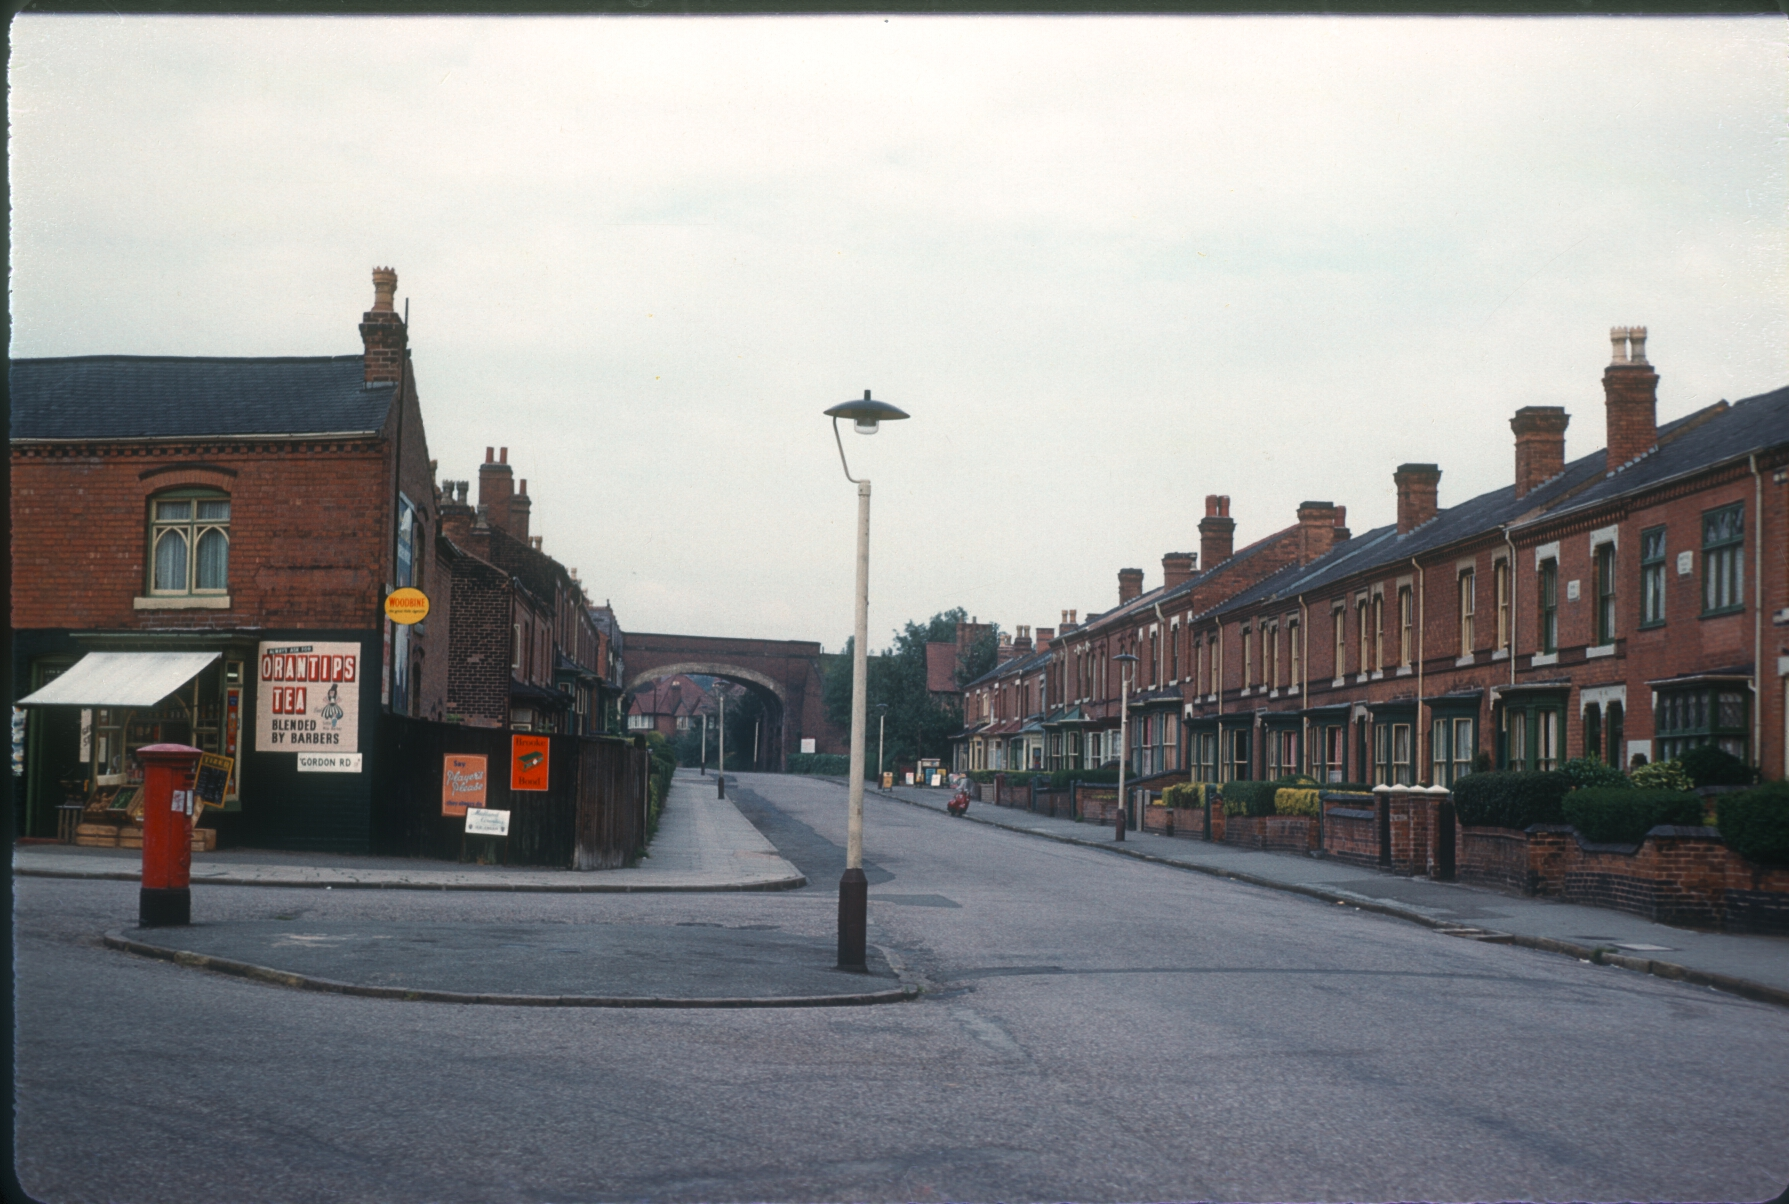 Harborne Park Hill road at corner of Gordon Road (19th Century Housing) Harborne tenants estate beyond Railway Bridge. 12th August 1960